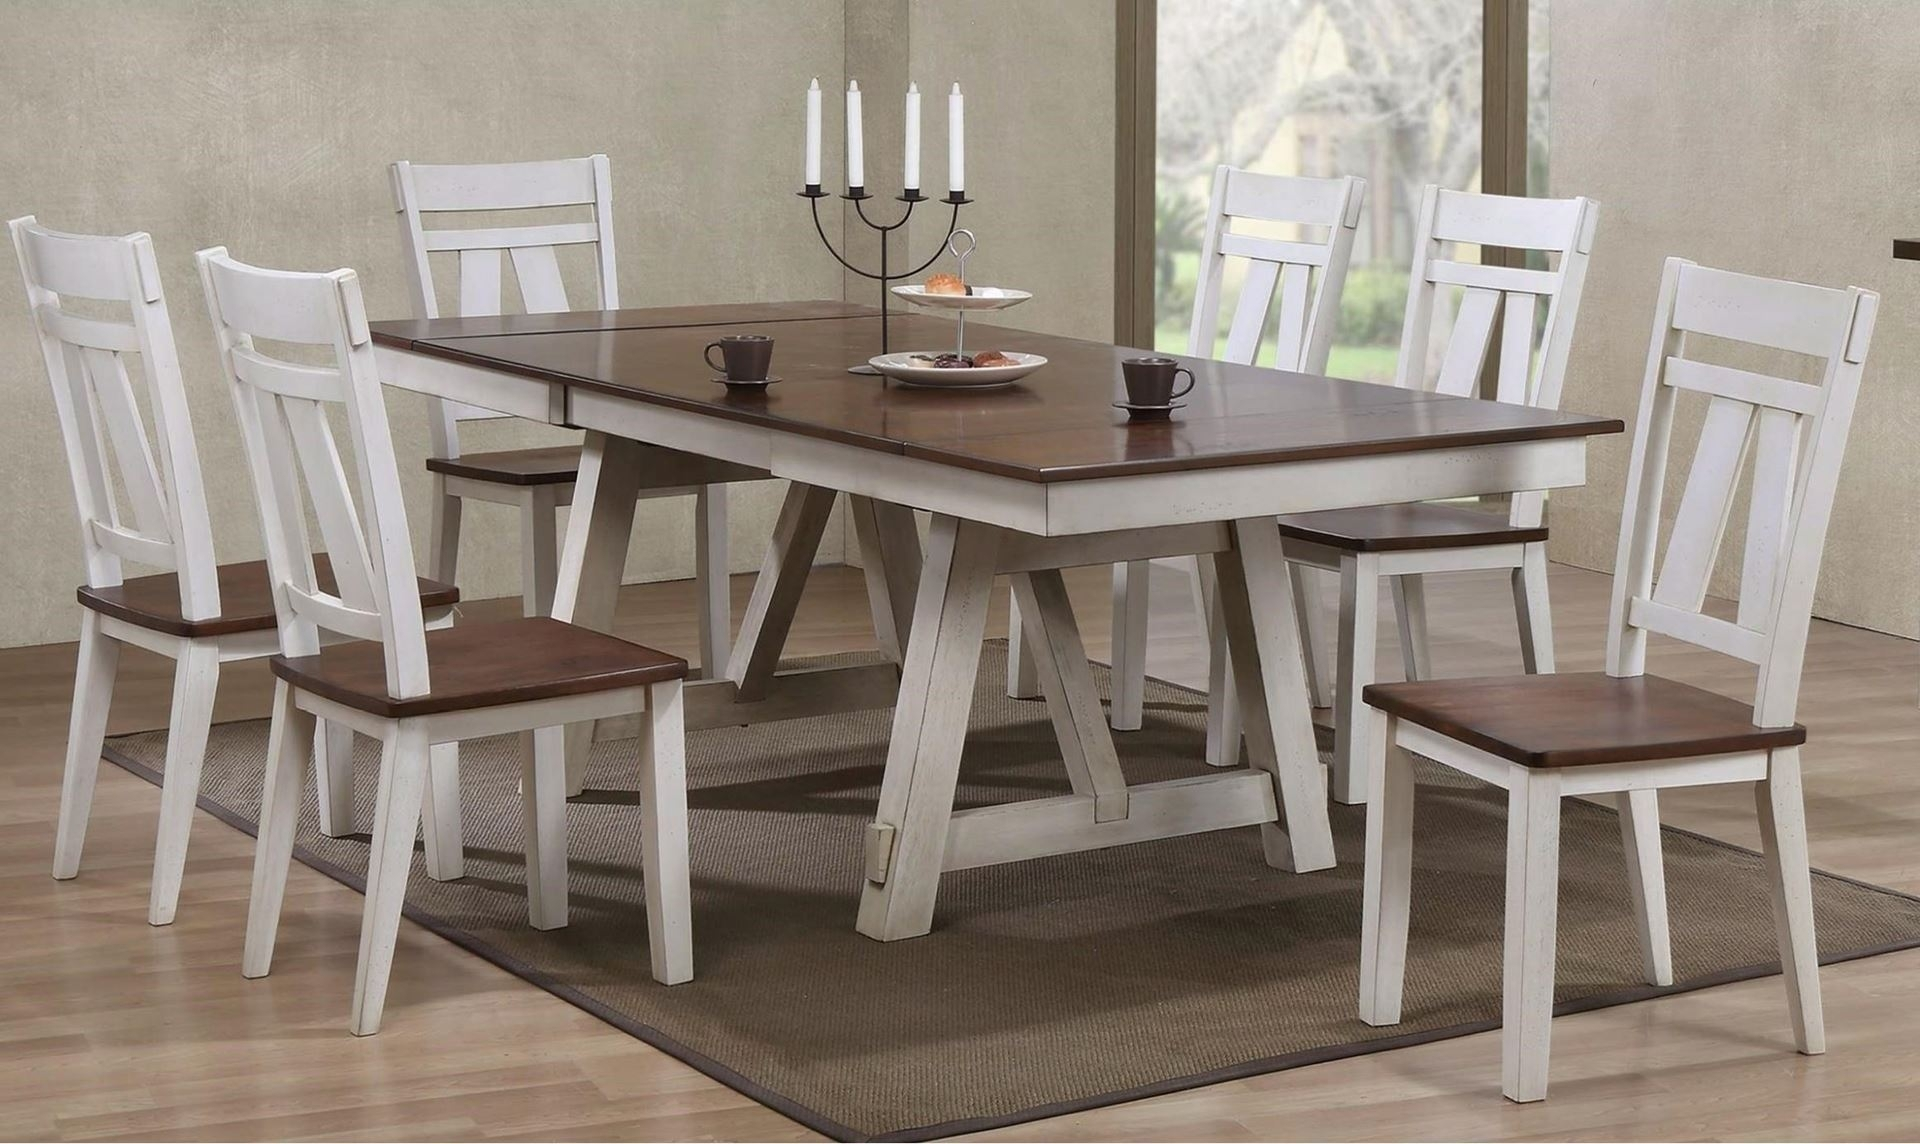 Some Farmhouse Dining Table Ideas – Darbylanefurniture Throughout Most Current Farm Dining Tables (View 3 of 20)